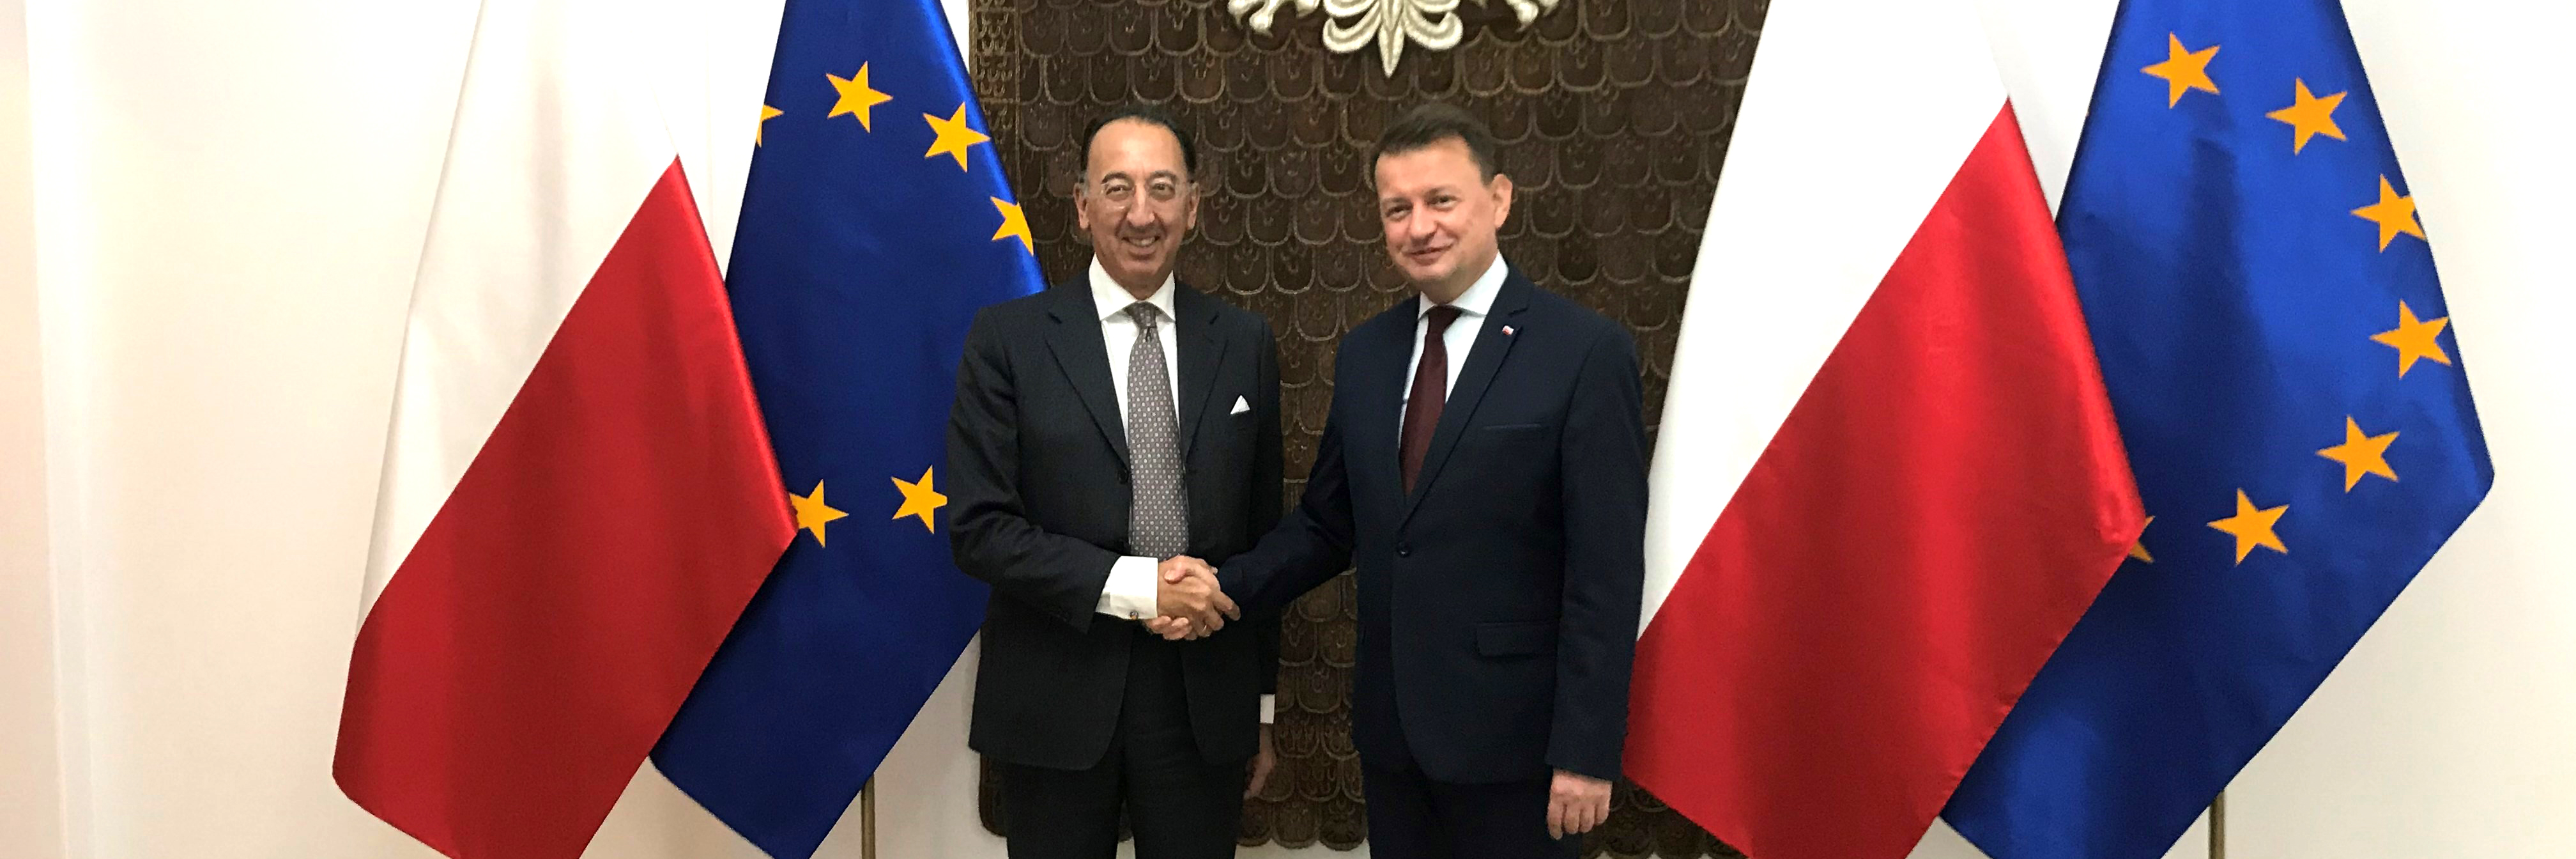 EDA Chief Executive holds talks in Poland